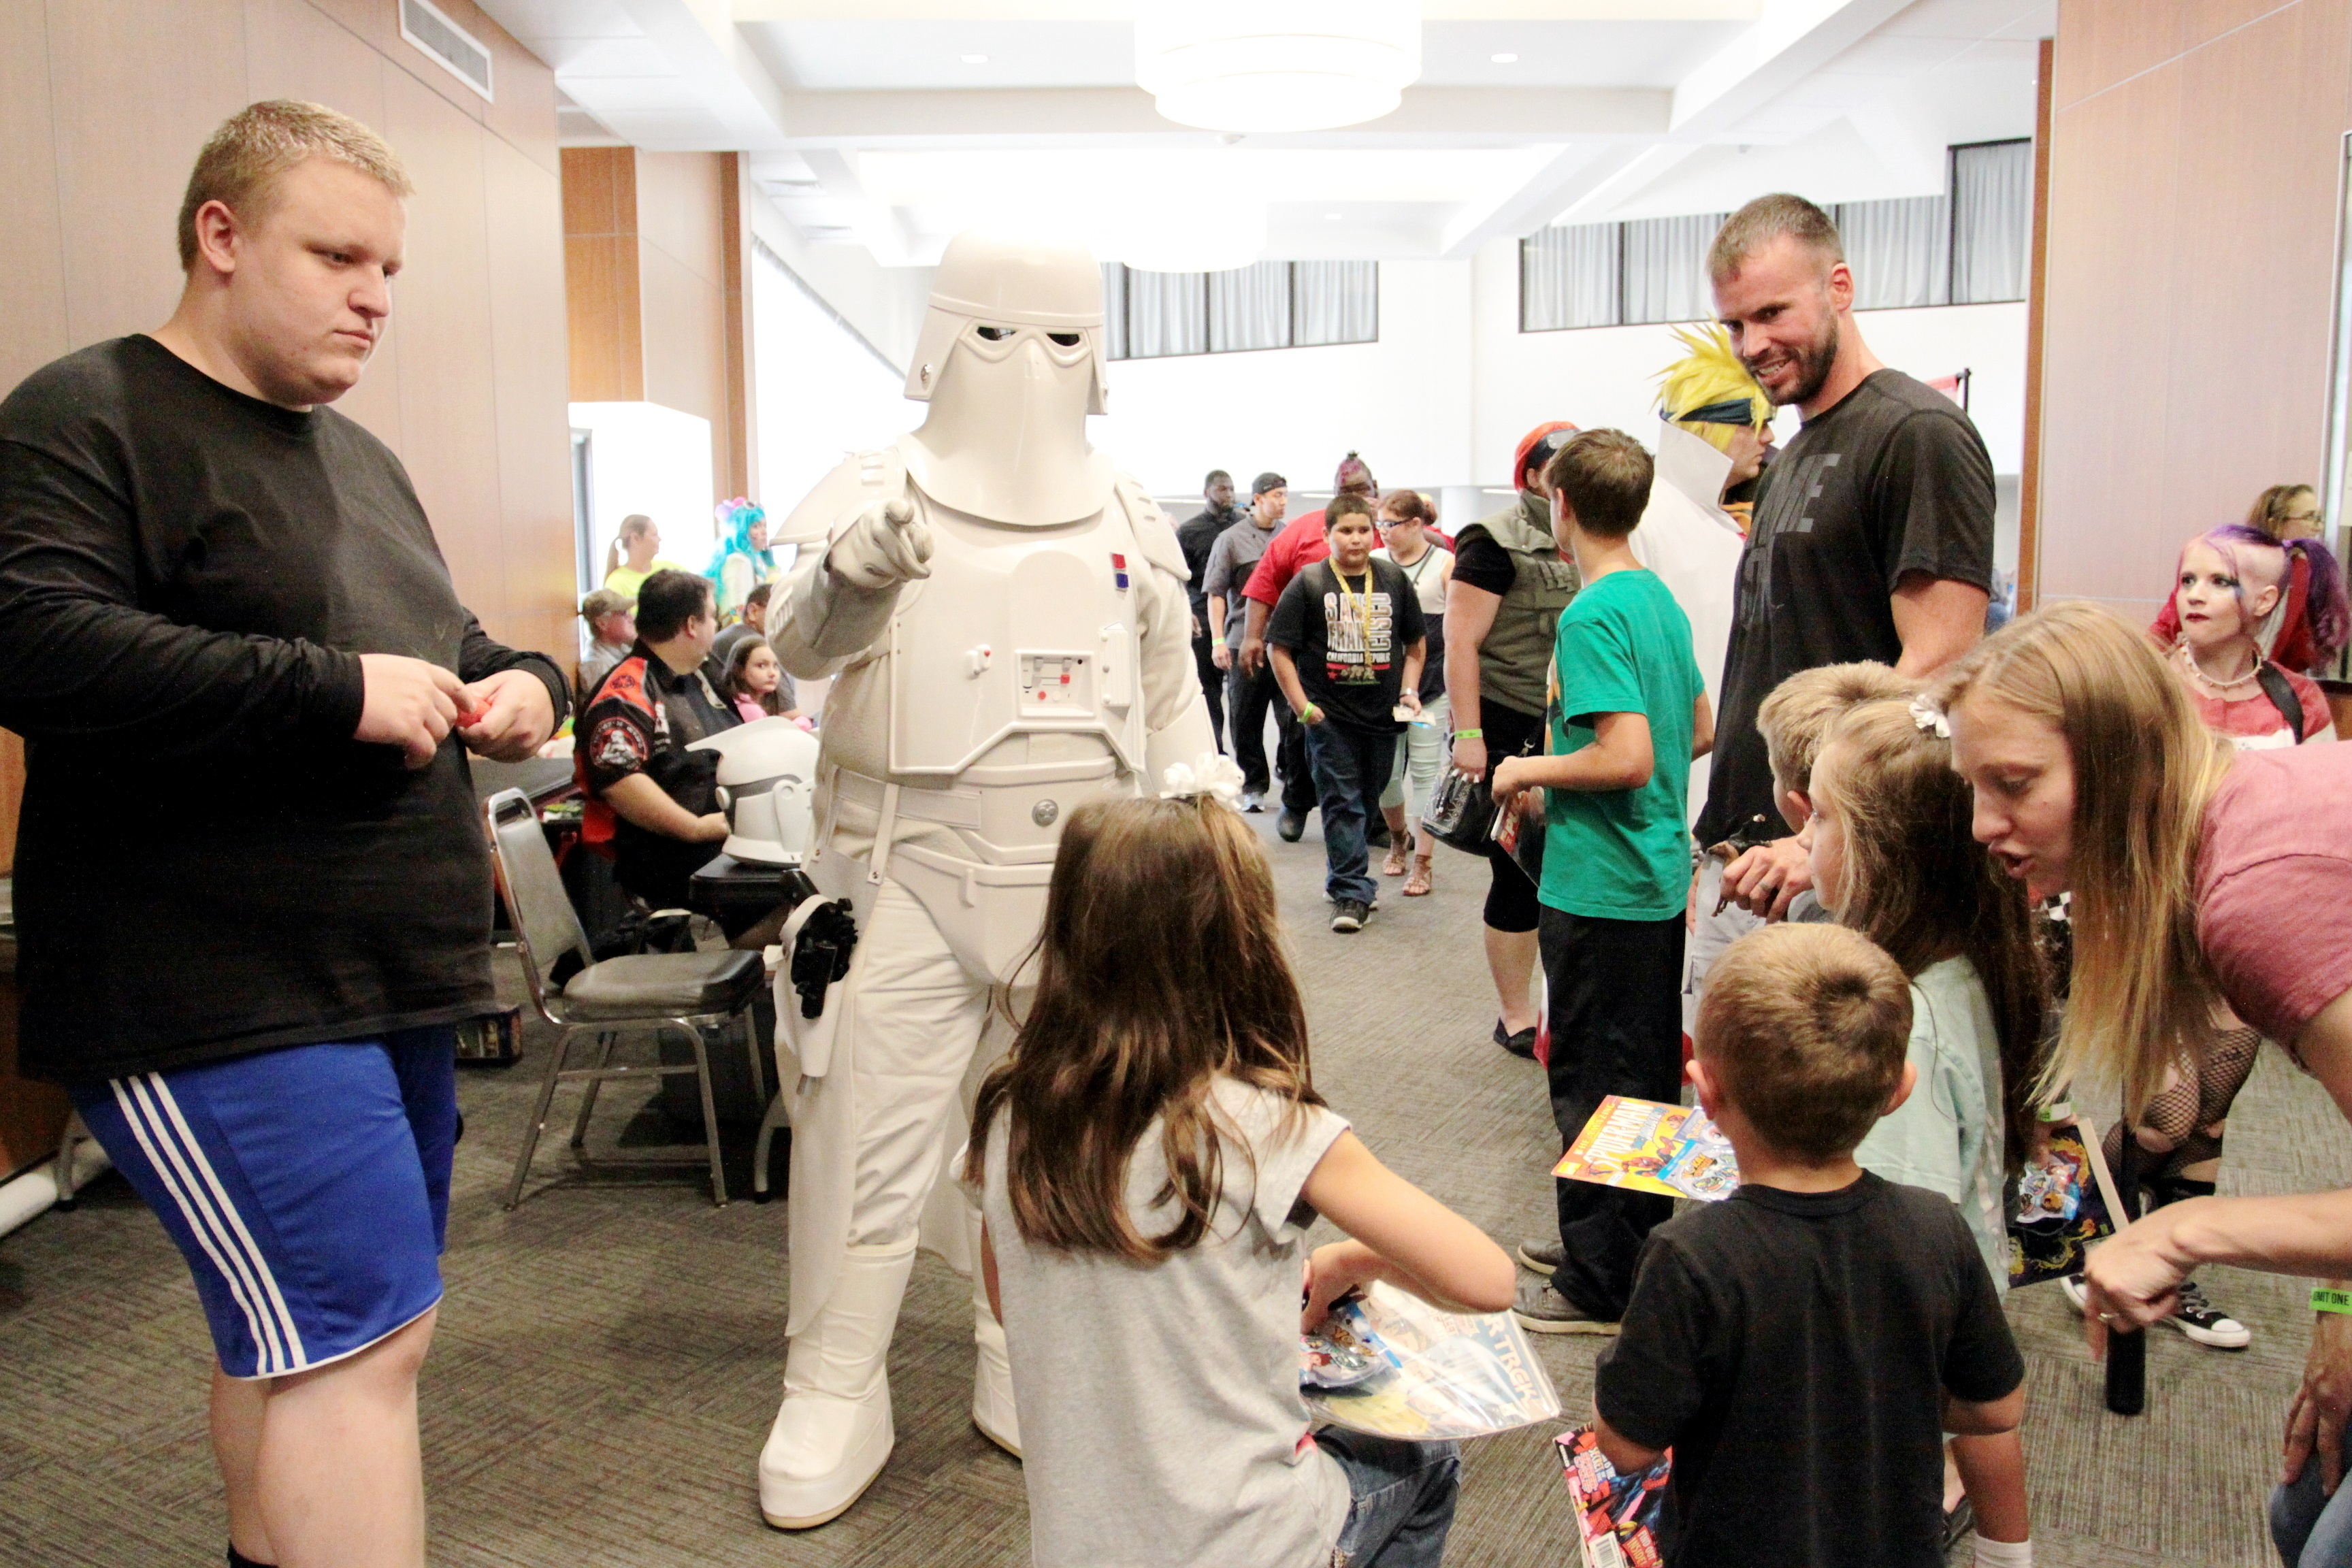 The Golden Triangle Comic-Con, a gaming, sci-fi and cosplay event that combines popular culture genres, returns to the Trotter Convention Center in Columbus Saturday, Aug. 18. Doors open at 10 a.m.